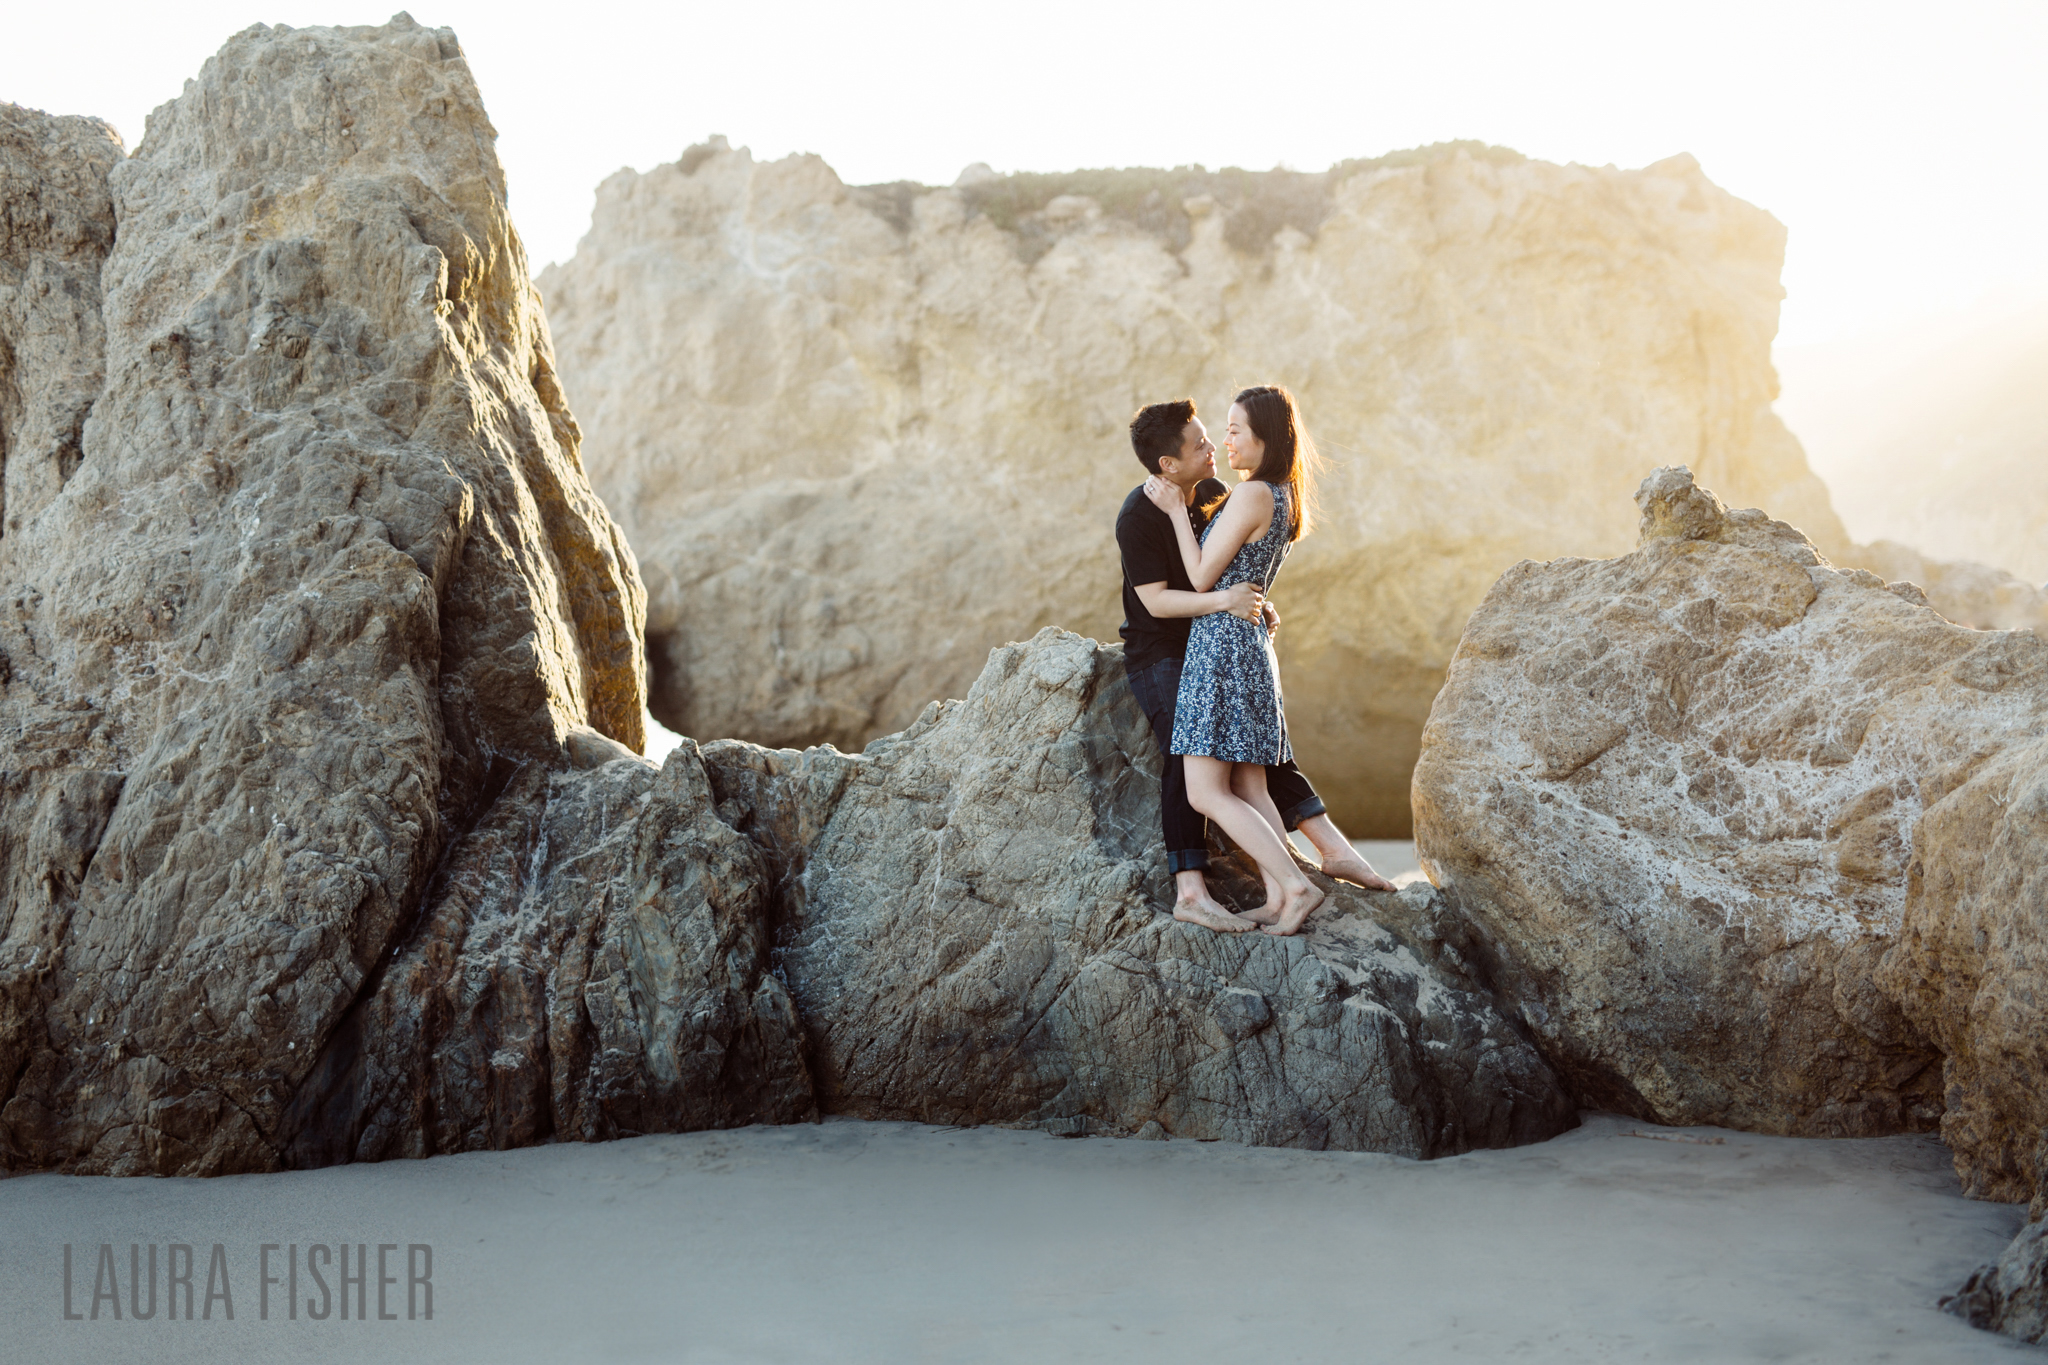 malibu-california-wedding-el-matador-beach-laura-fisher-photography-0054.jpg